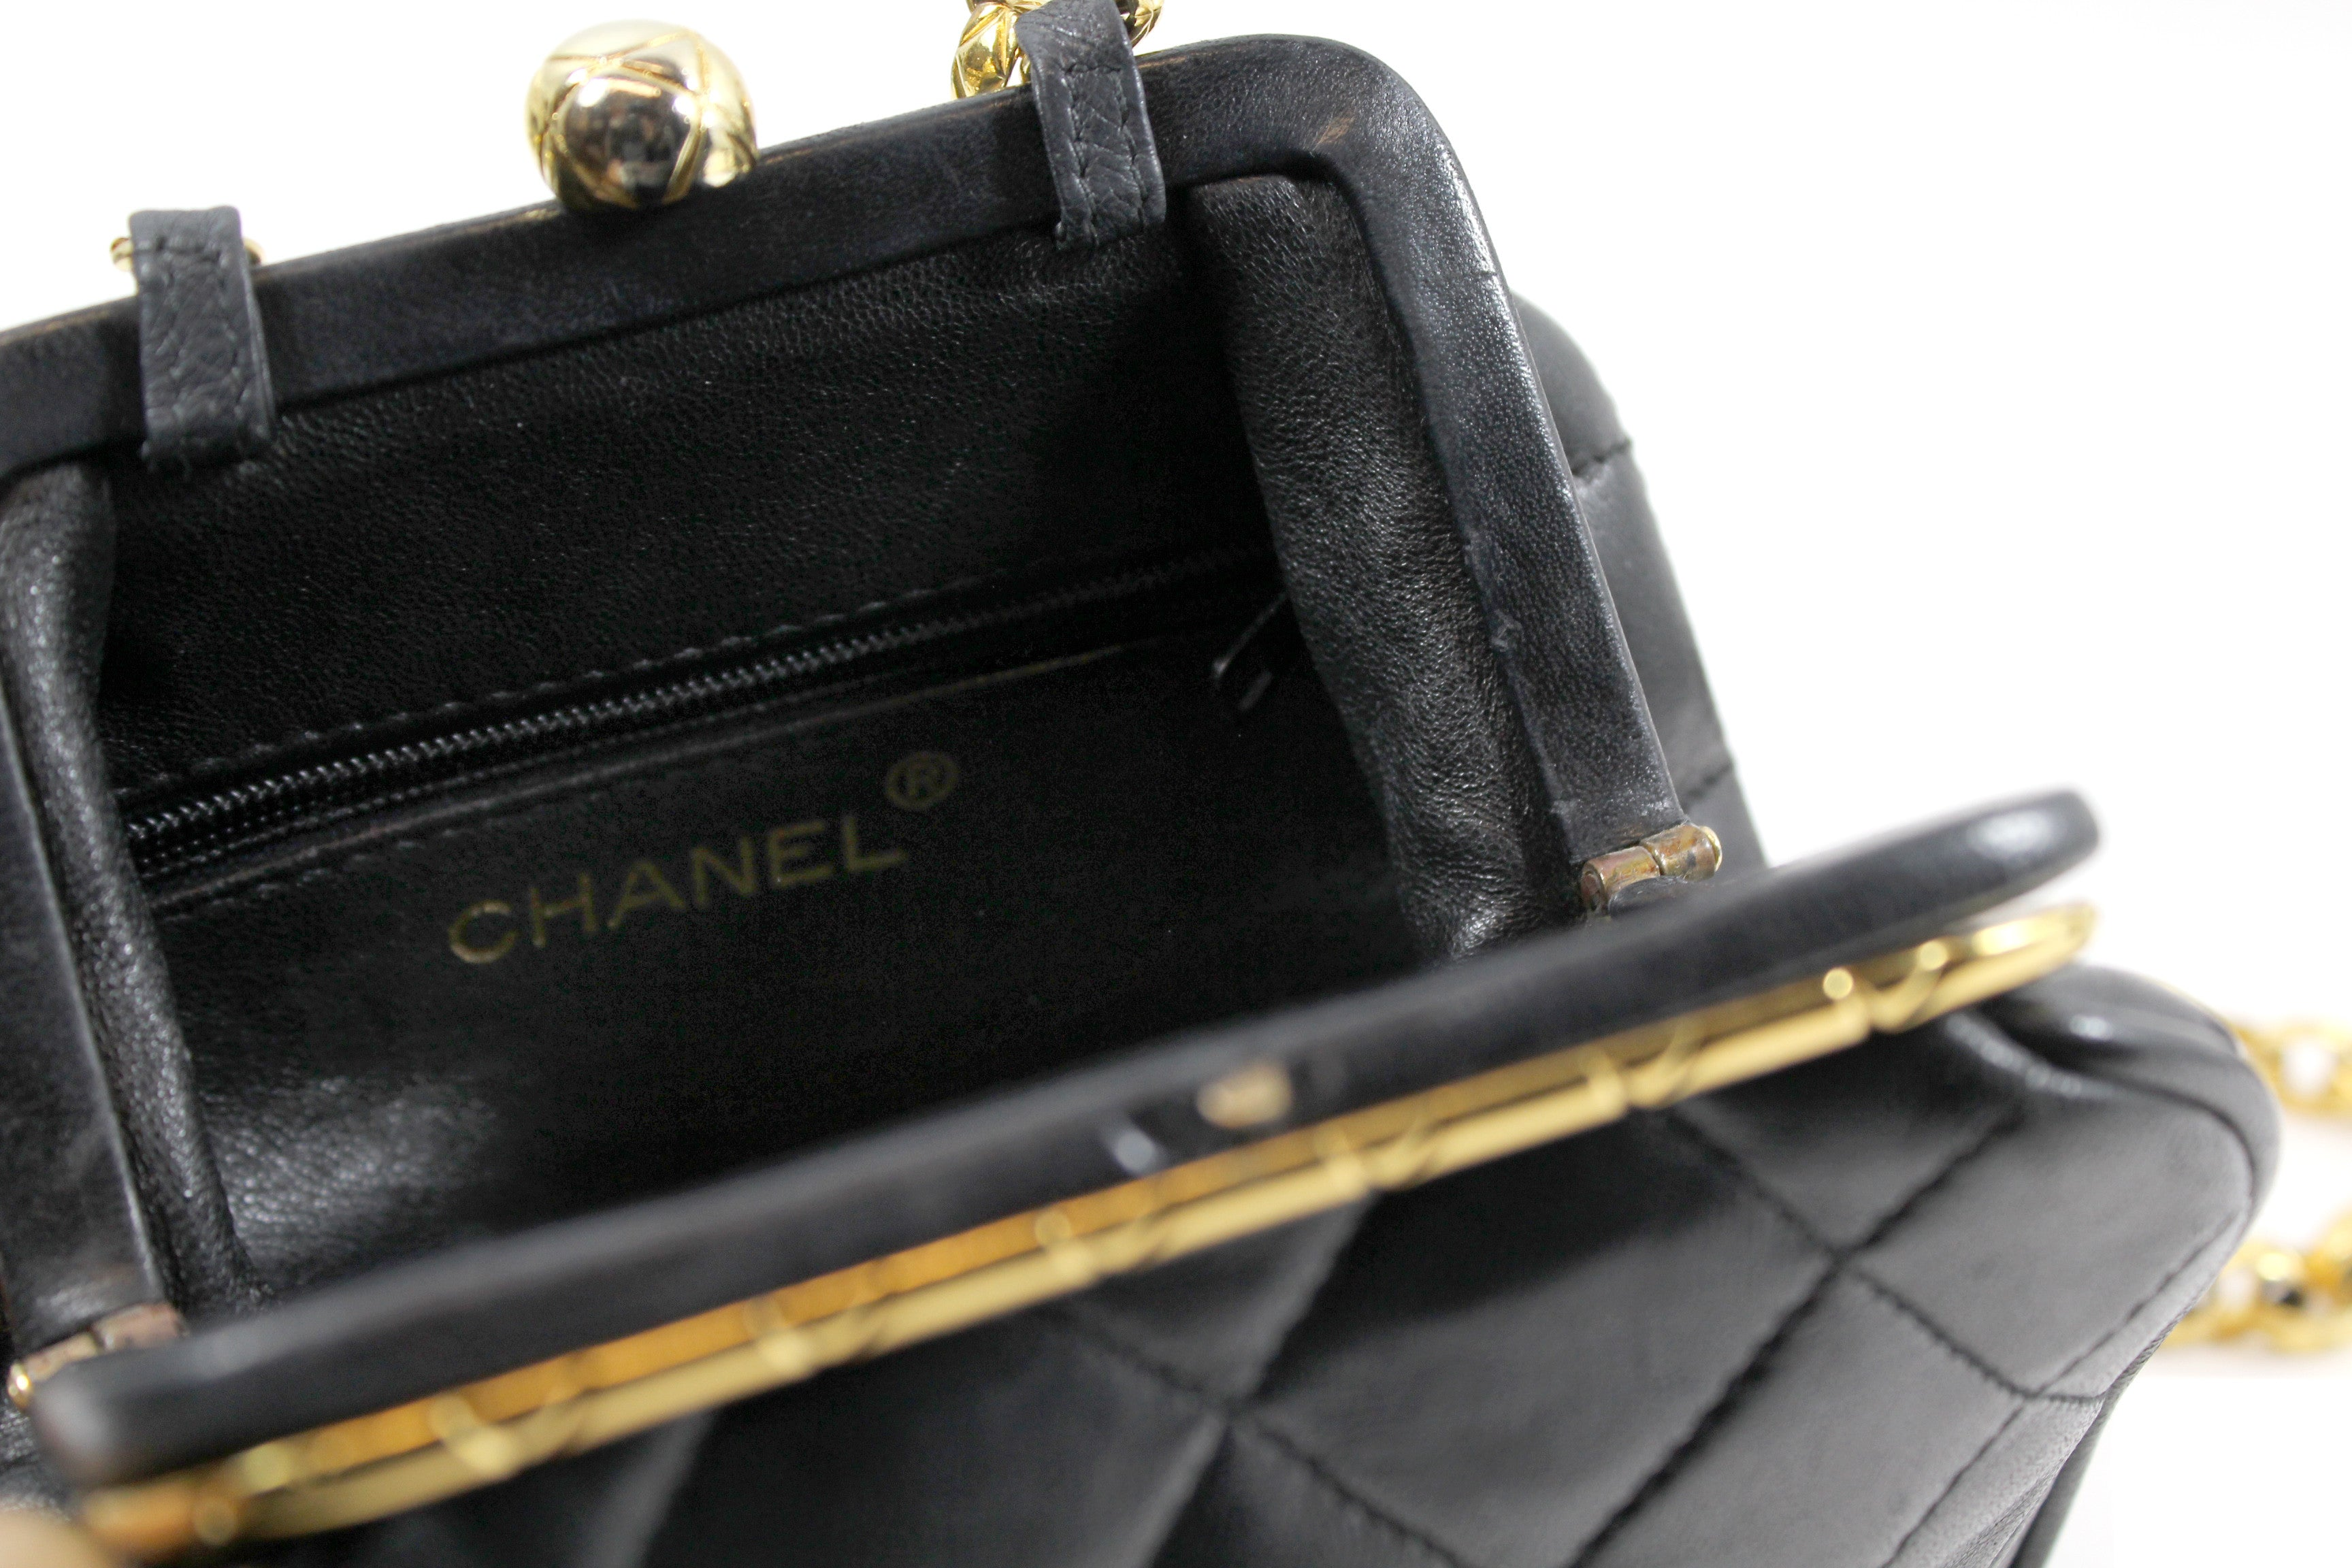 Chanel Small Black Quilted Leather Bag